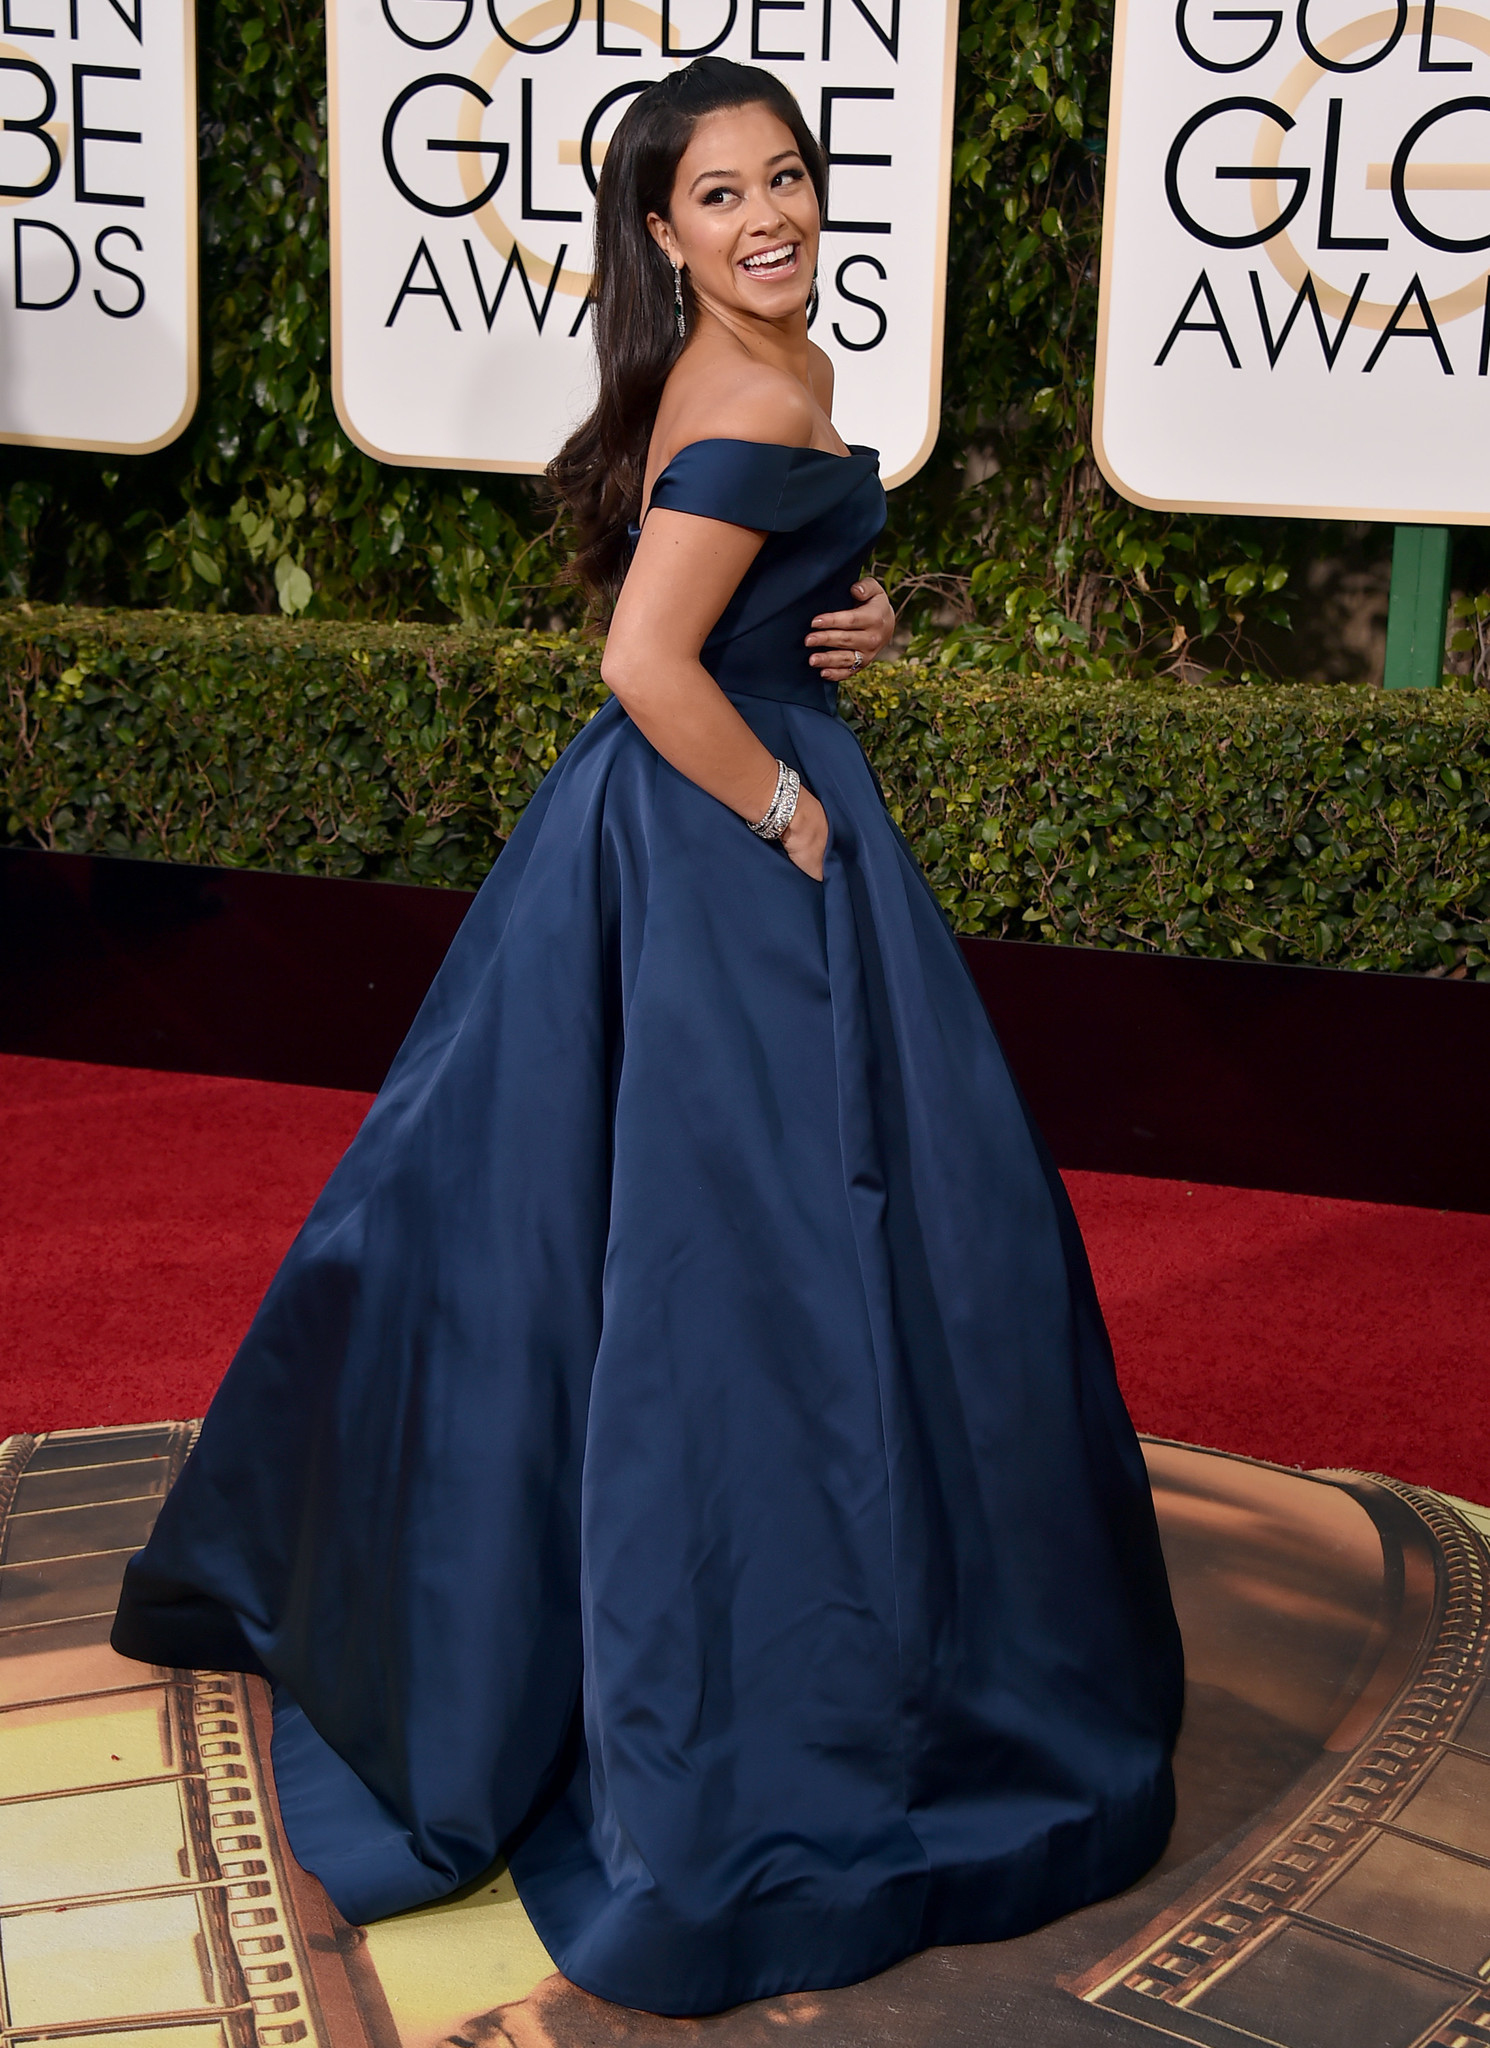 A Celebrity Walking Down The Red Carpet At Golden Globe Awards